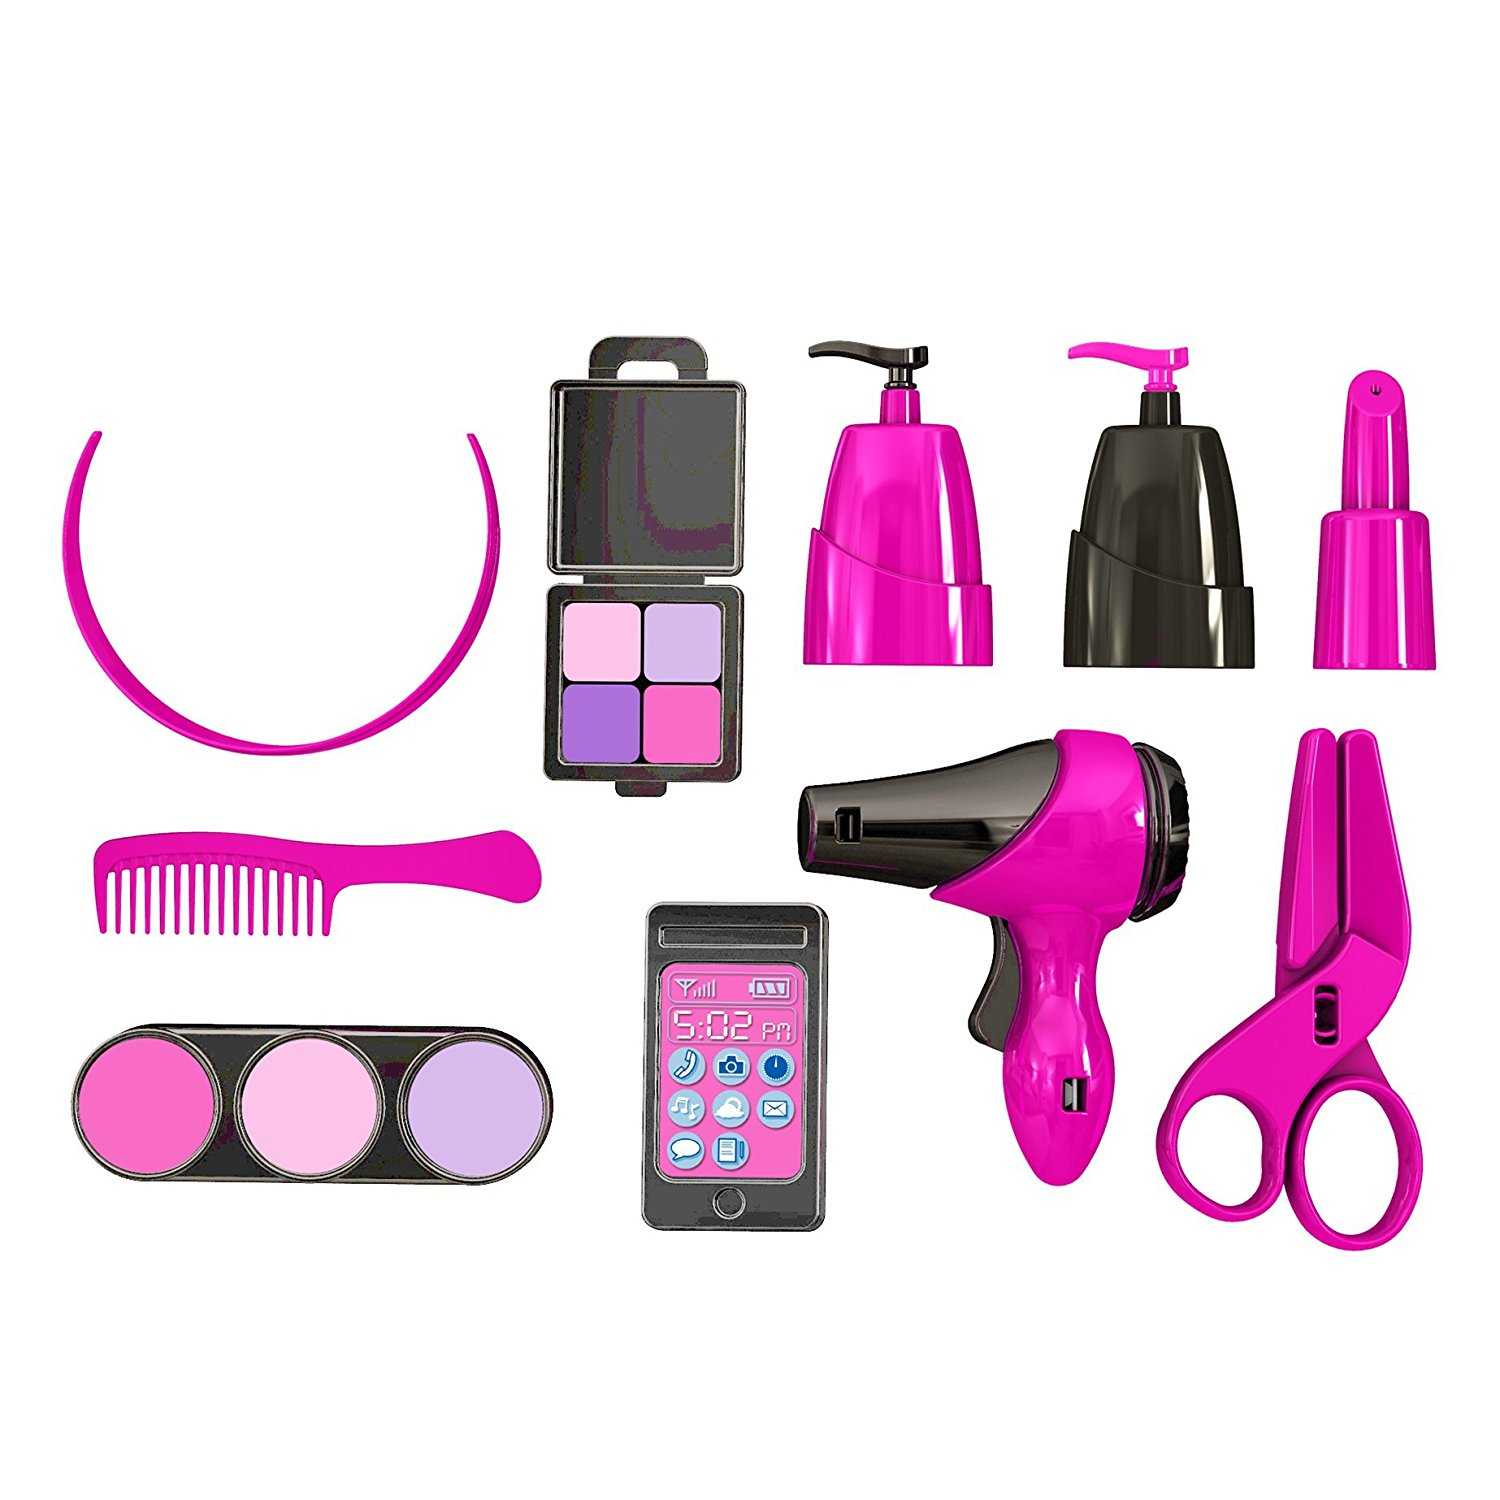 American plastic toys inc deluxe beauty salon perfect for for Accessories for beauty salon